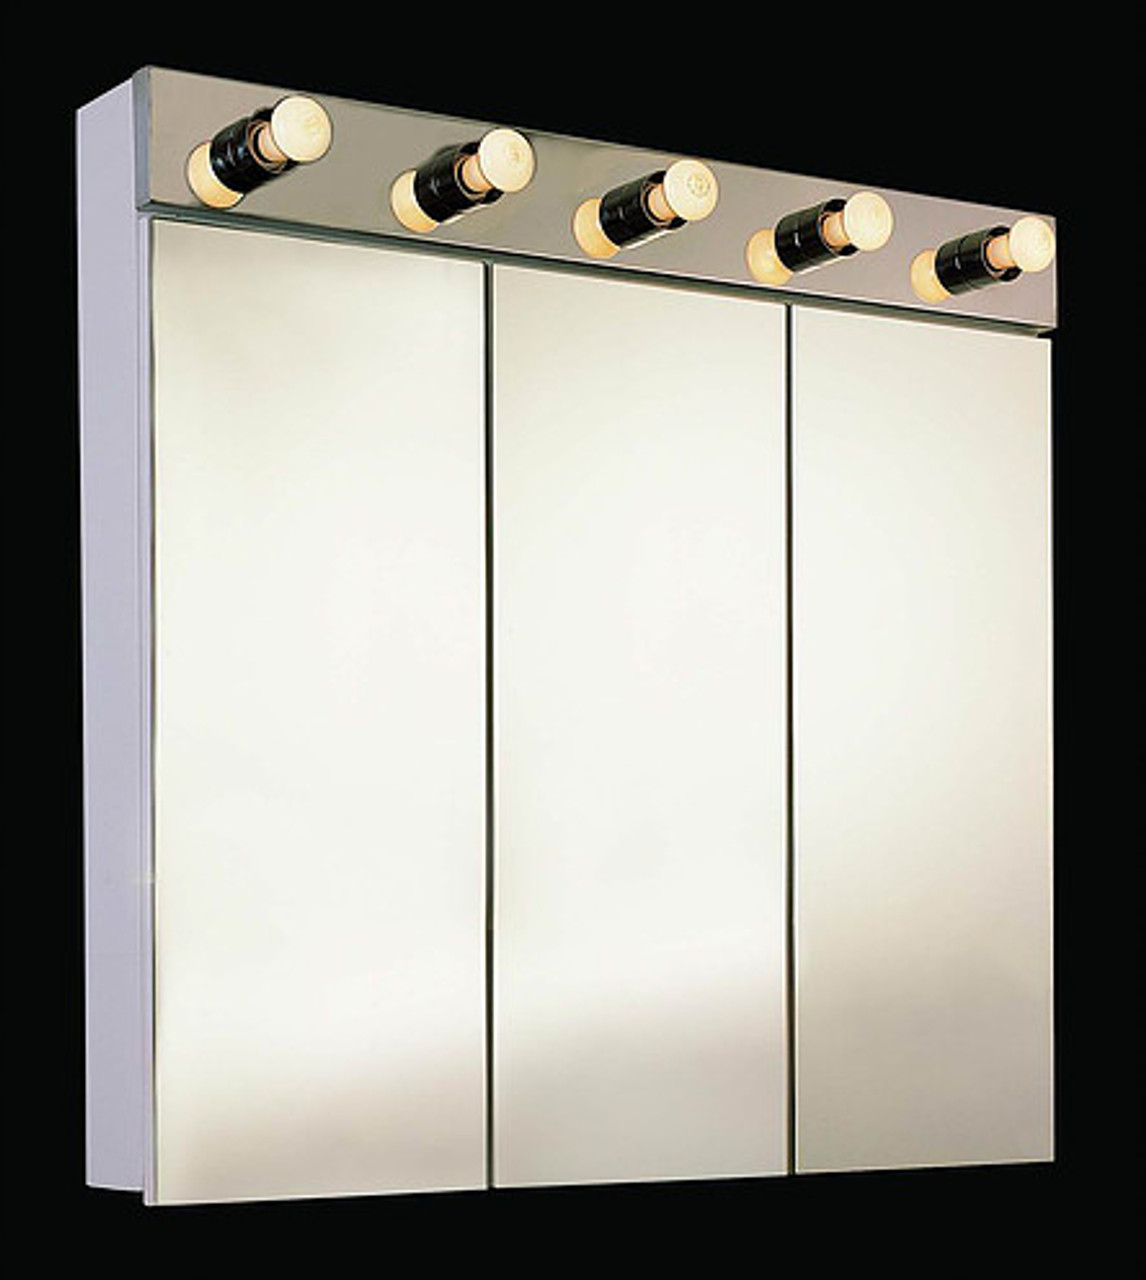 Ketcham Tri-View Medicine Cabinets Tri-View with Light Series